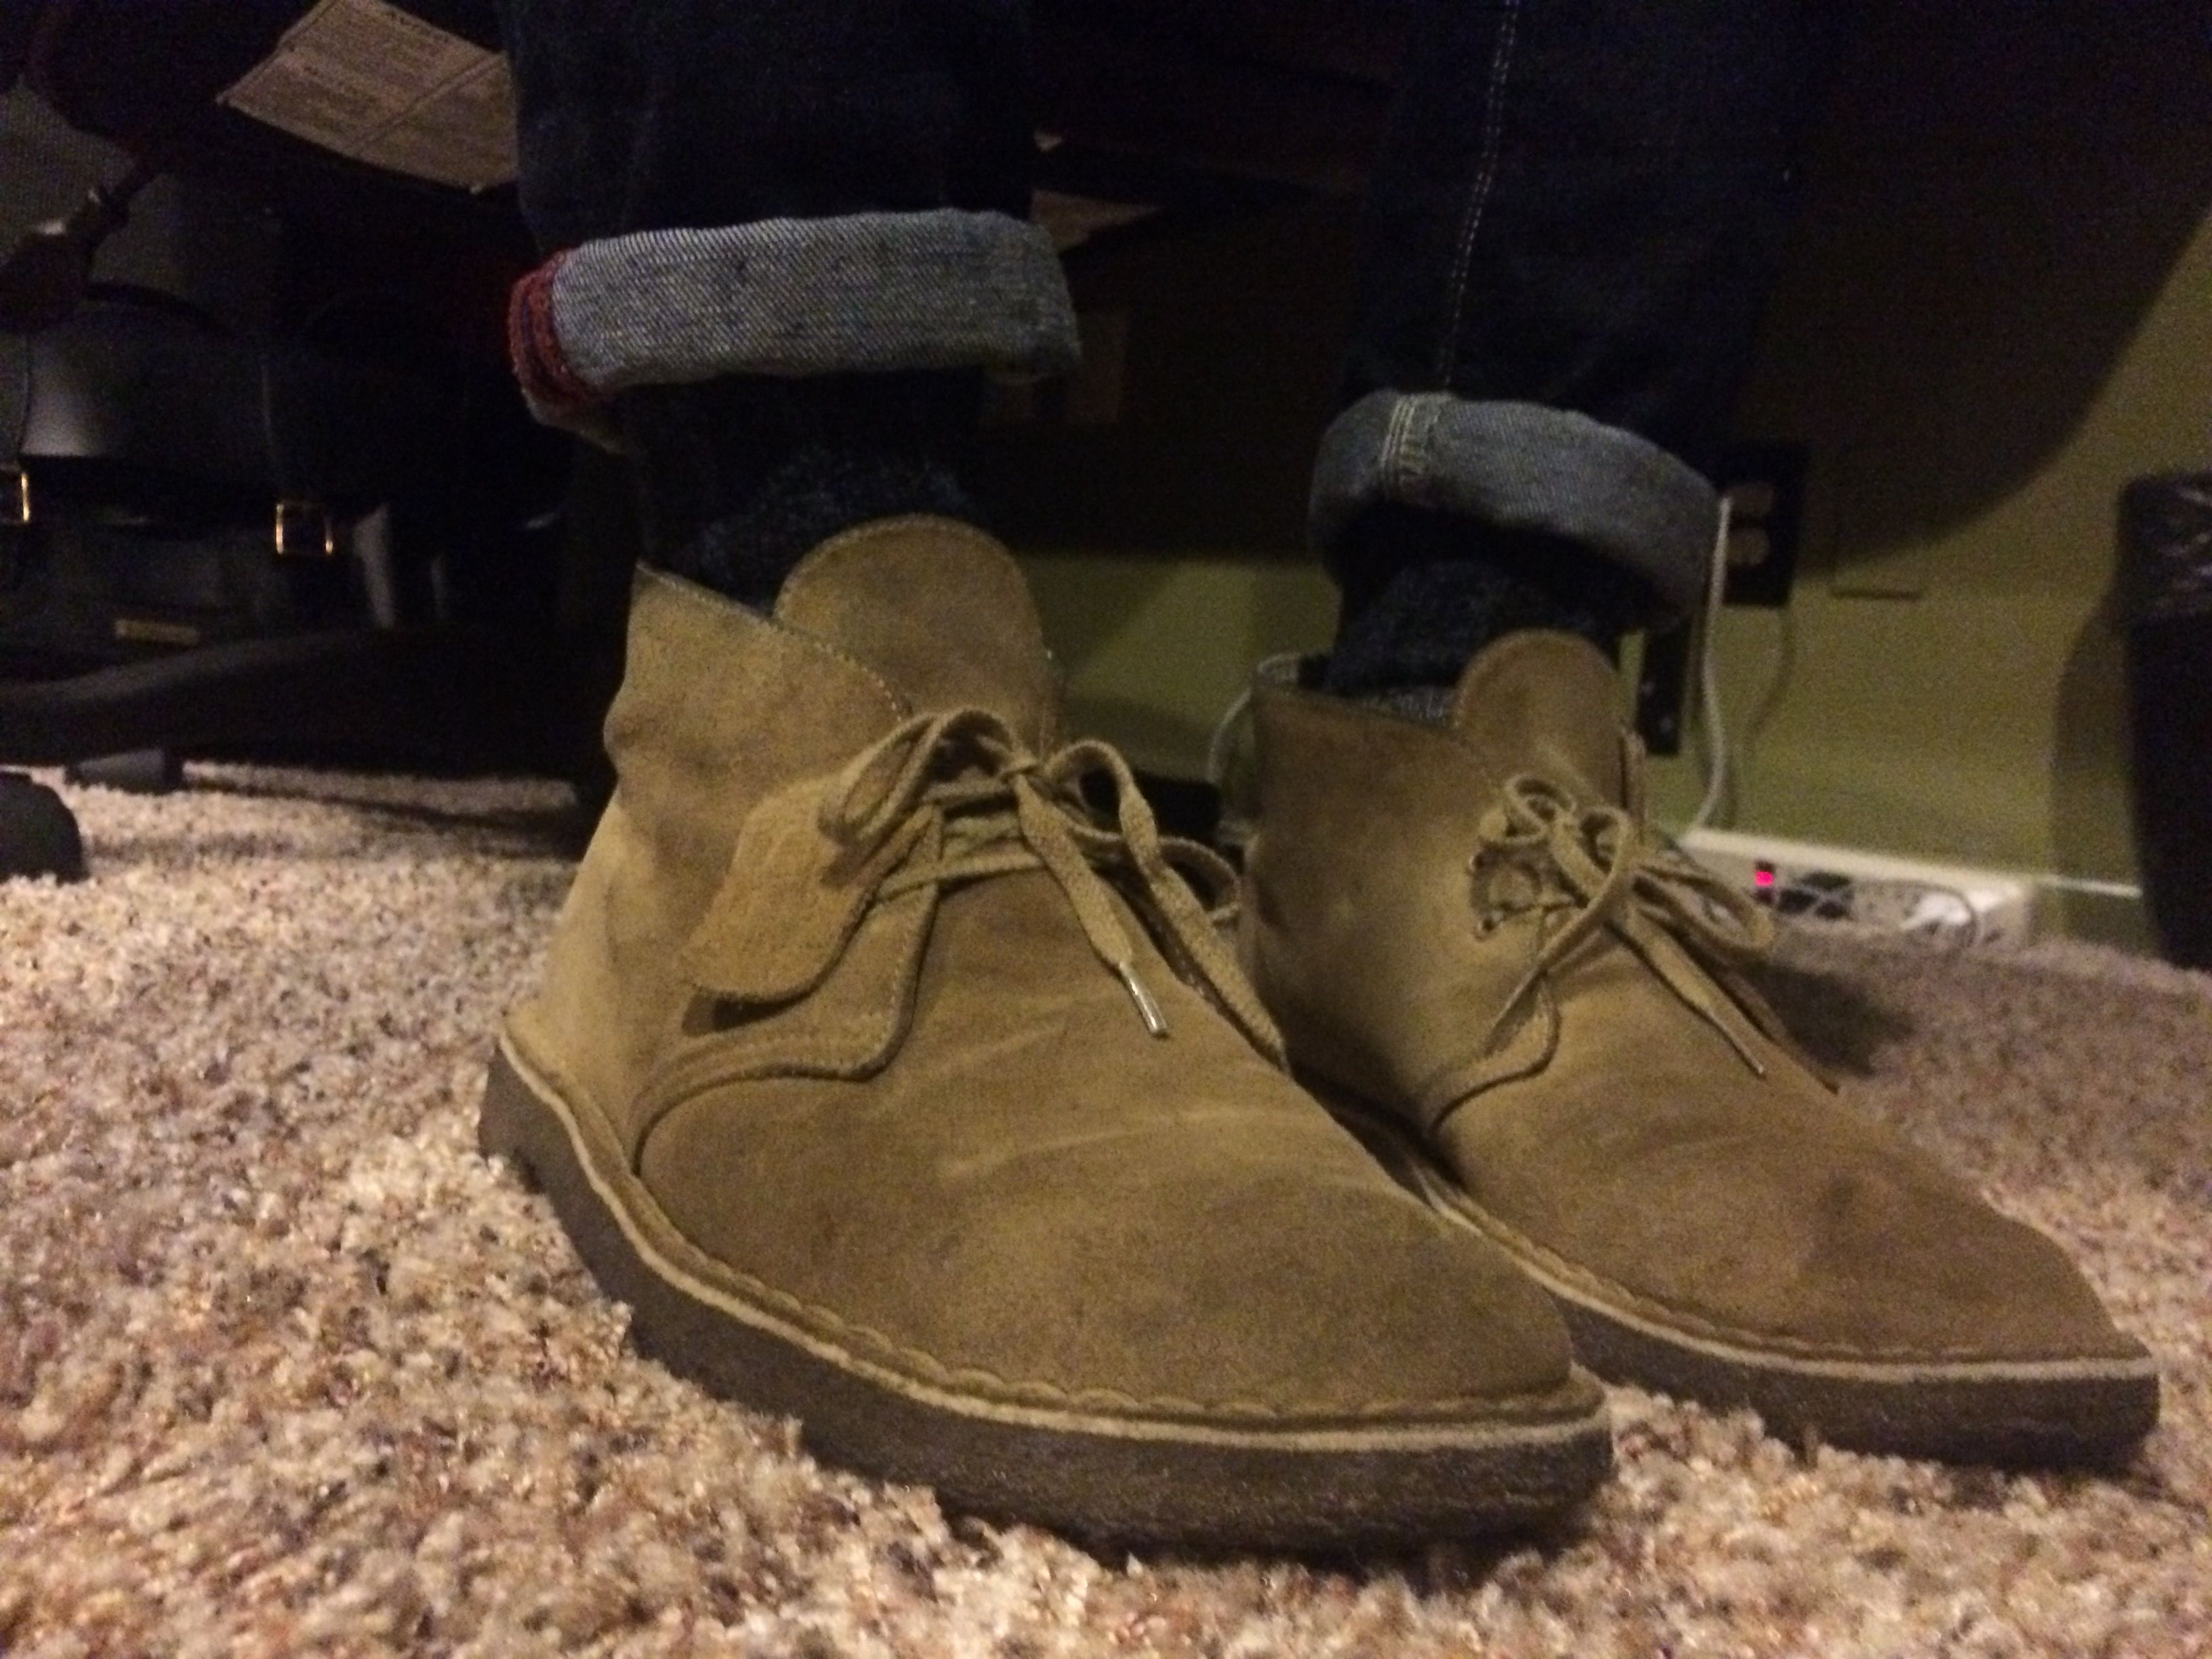 Oakwood Suede First Pair About 3 Years Old